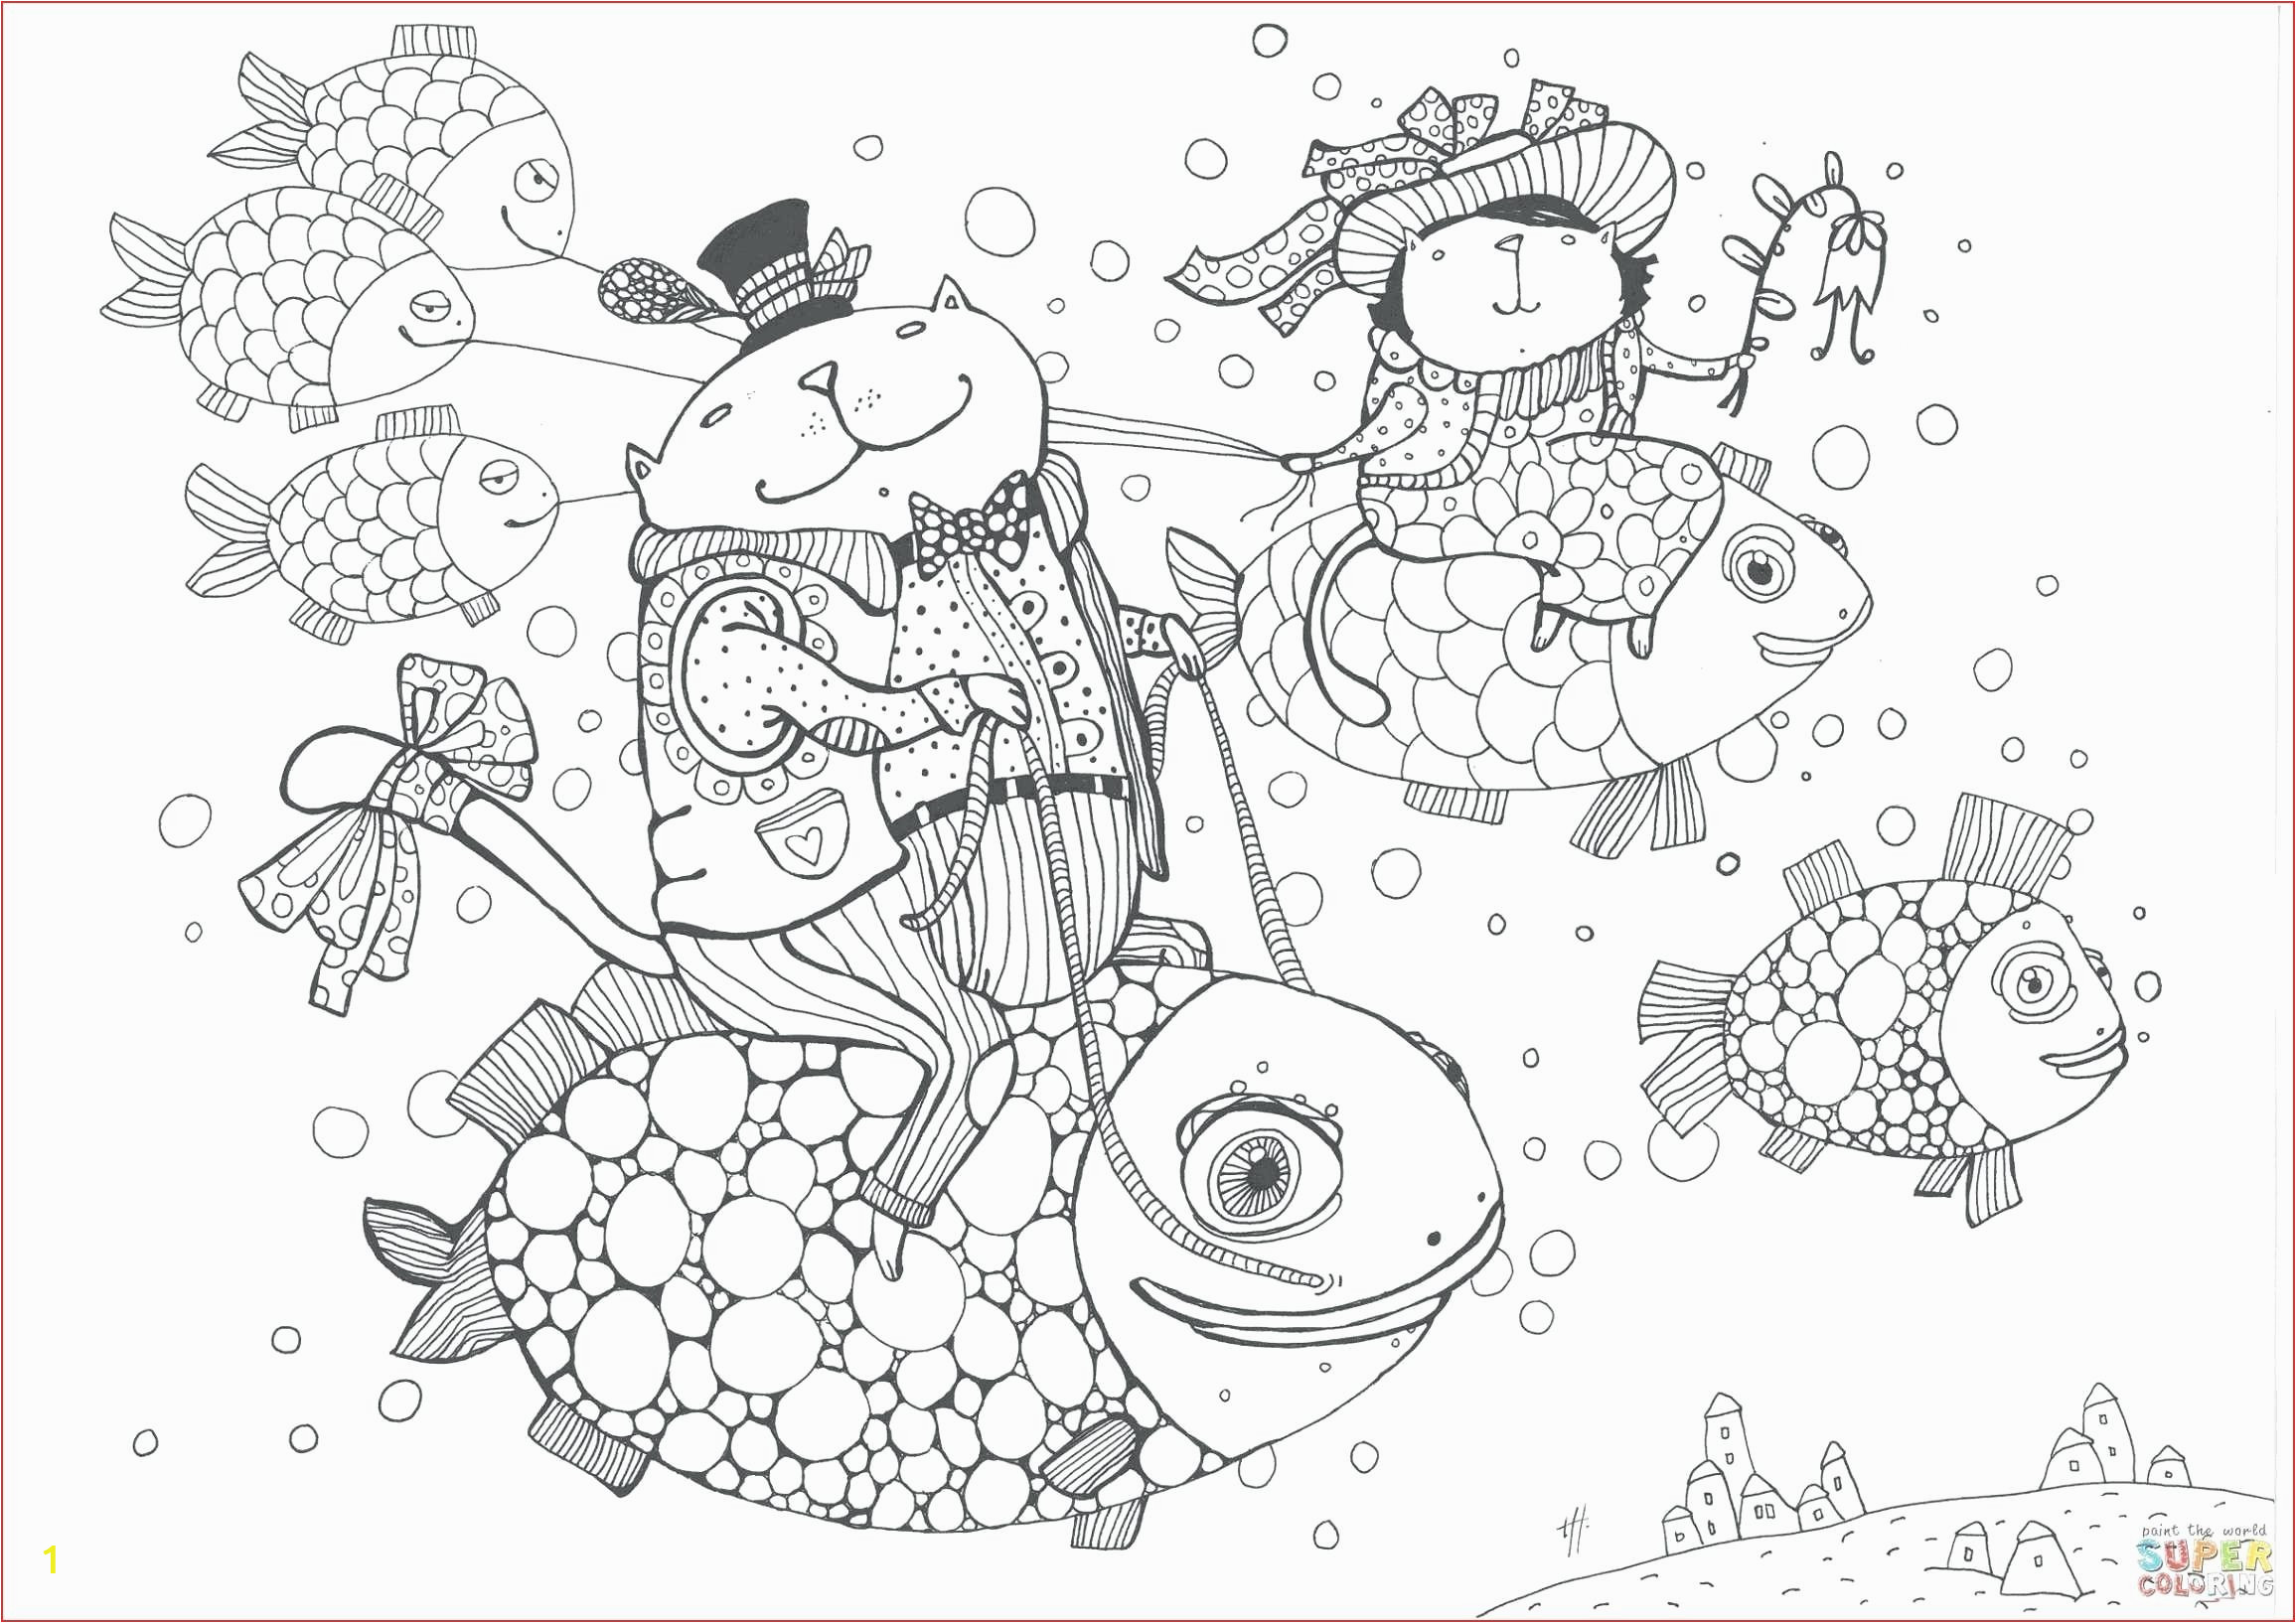 superhero coloring pages printable dragonfly page camel lego superman dora stranger things book letter stormtrooper happy red queen colouring year old sheets for olds snack buffy the